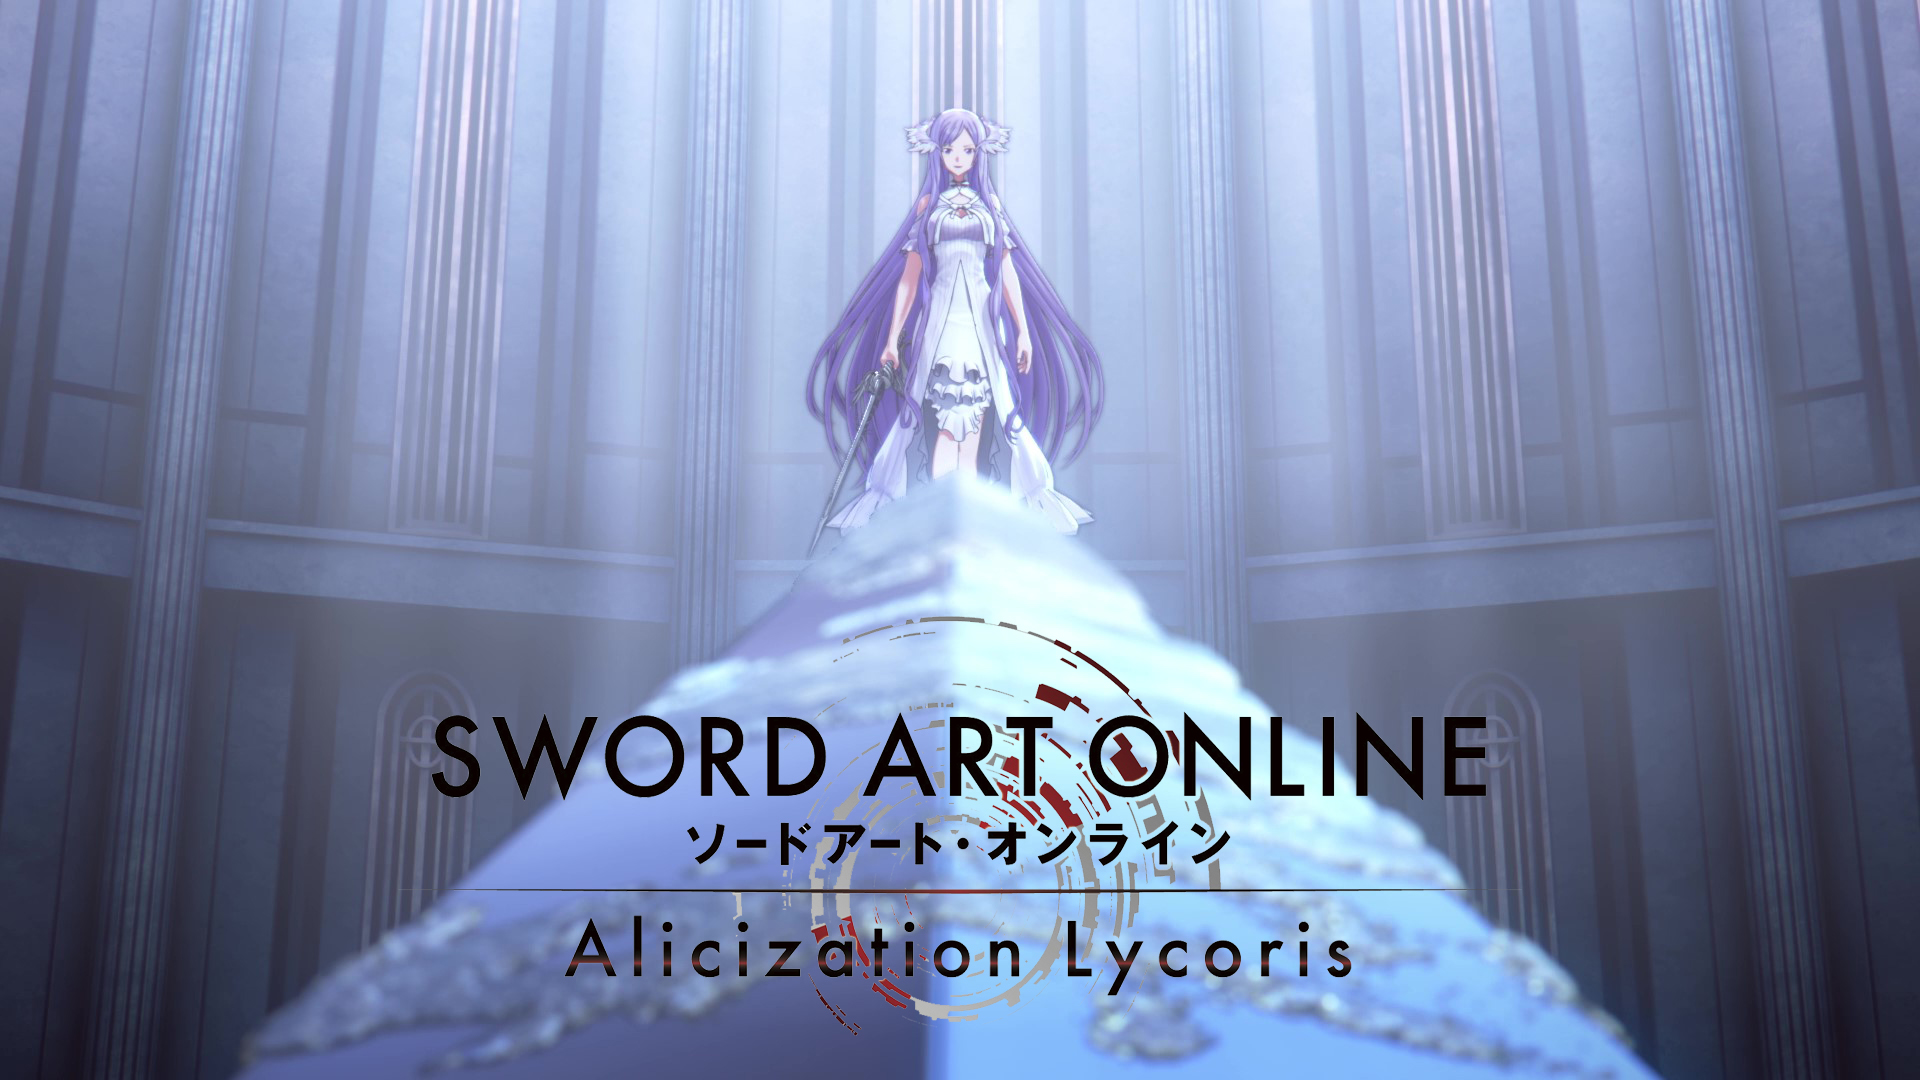 Alicization Lycoris Game's Trailer Introduces New Character Medina